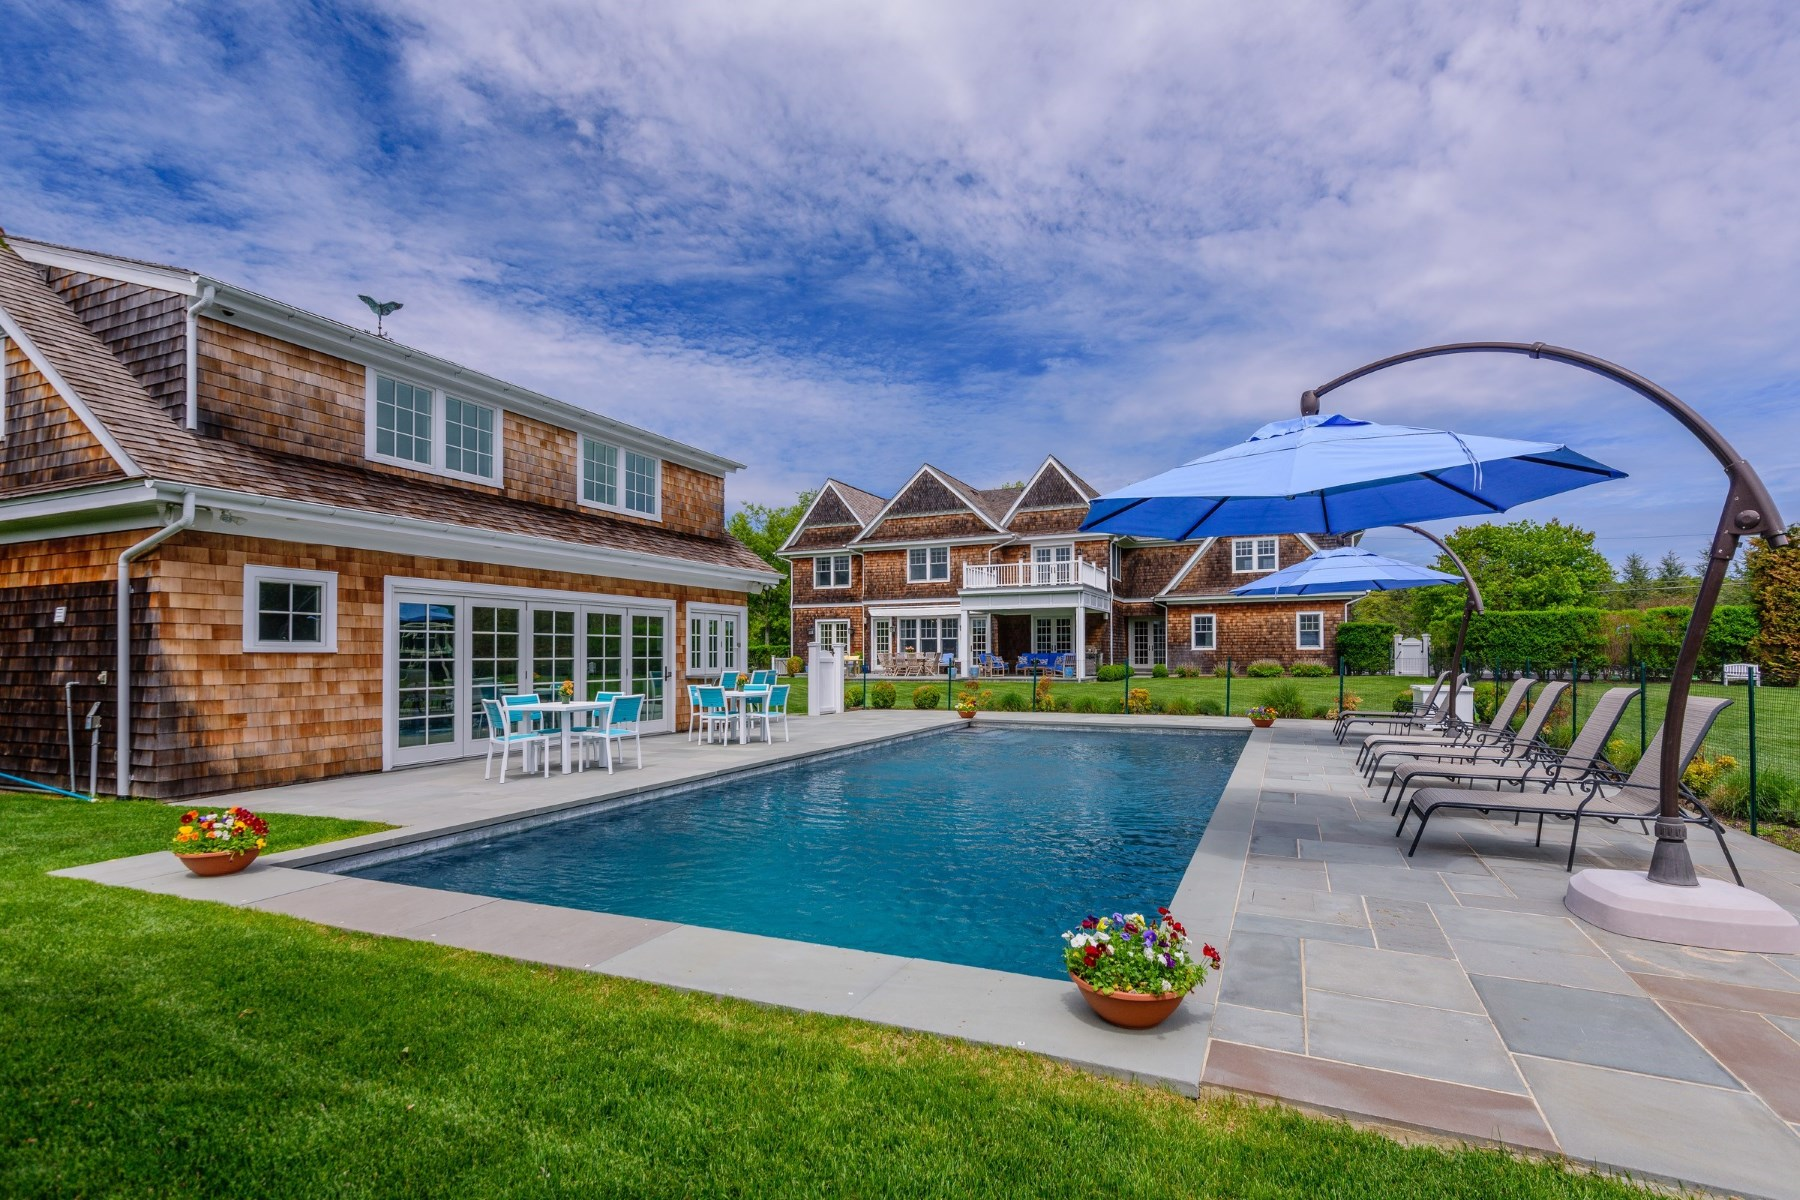 Moradia para Venda às Resort Living with Sunset Views 590 Lumber Lane Bridgehampton North, Bridgehampton, Nova York 11932 Estados Unidos